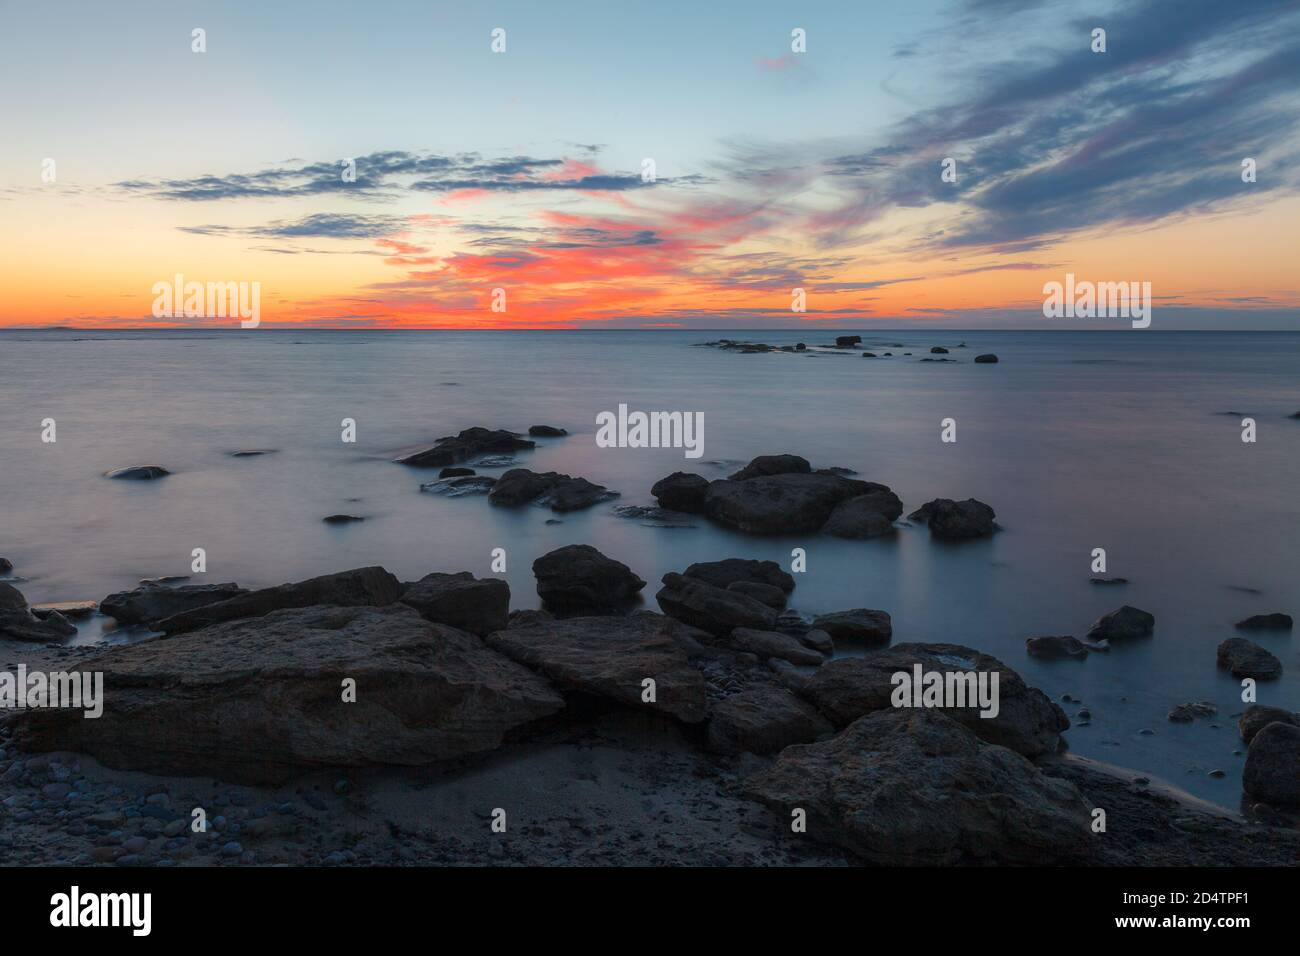 Twilight sunset over rocky shore of Baltic sea. Almost clear sky and orange strap along the horison. Estonia. Stock Photo